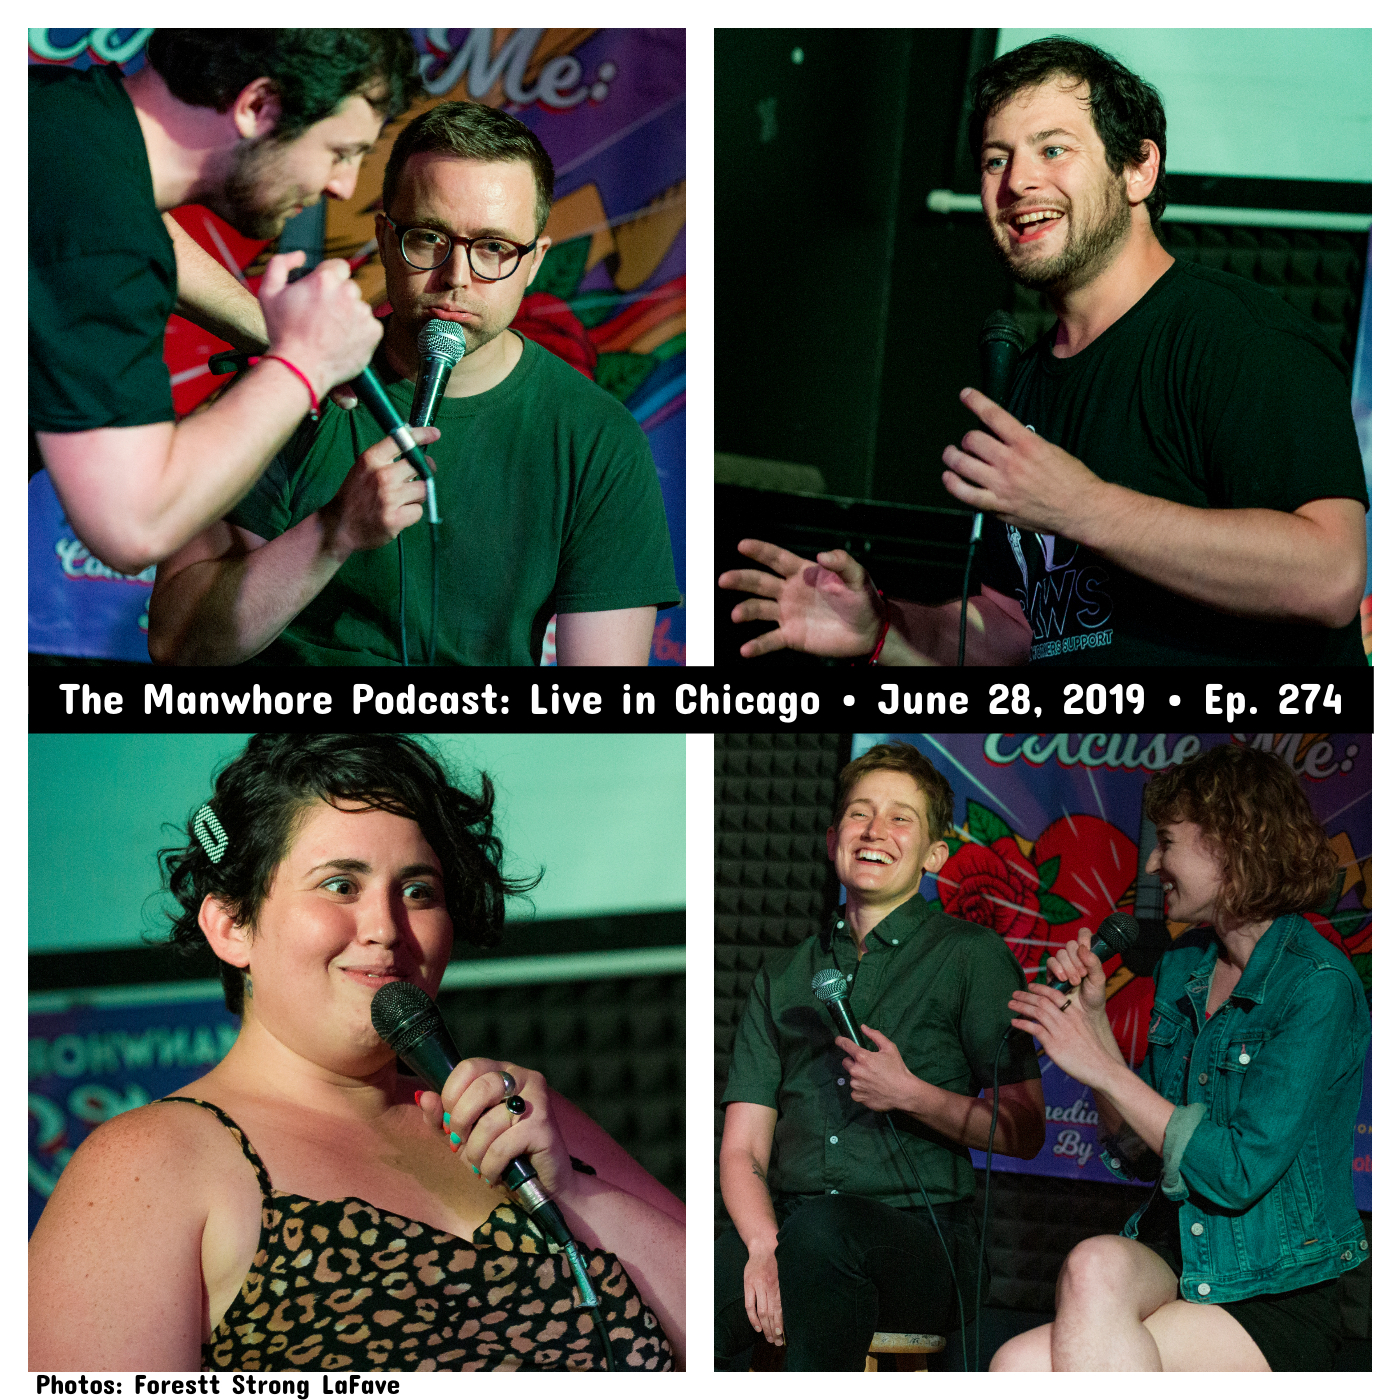 """The Manwhore Podcast: A Sex-Positive Quest - LIVE from Chicago: """"How many women have you disappointed?!"""" (Ep. 274)"""